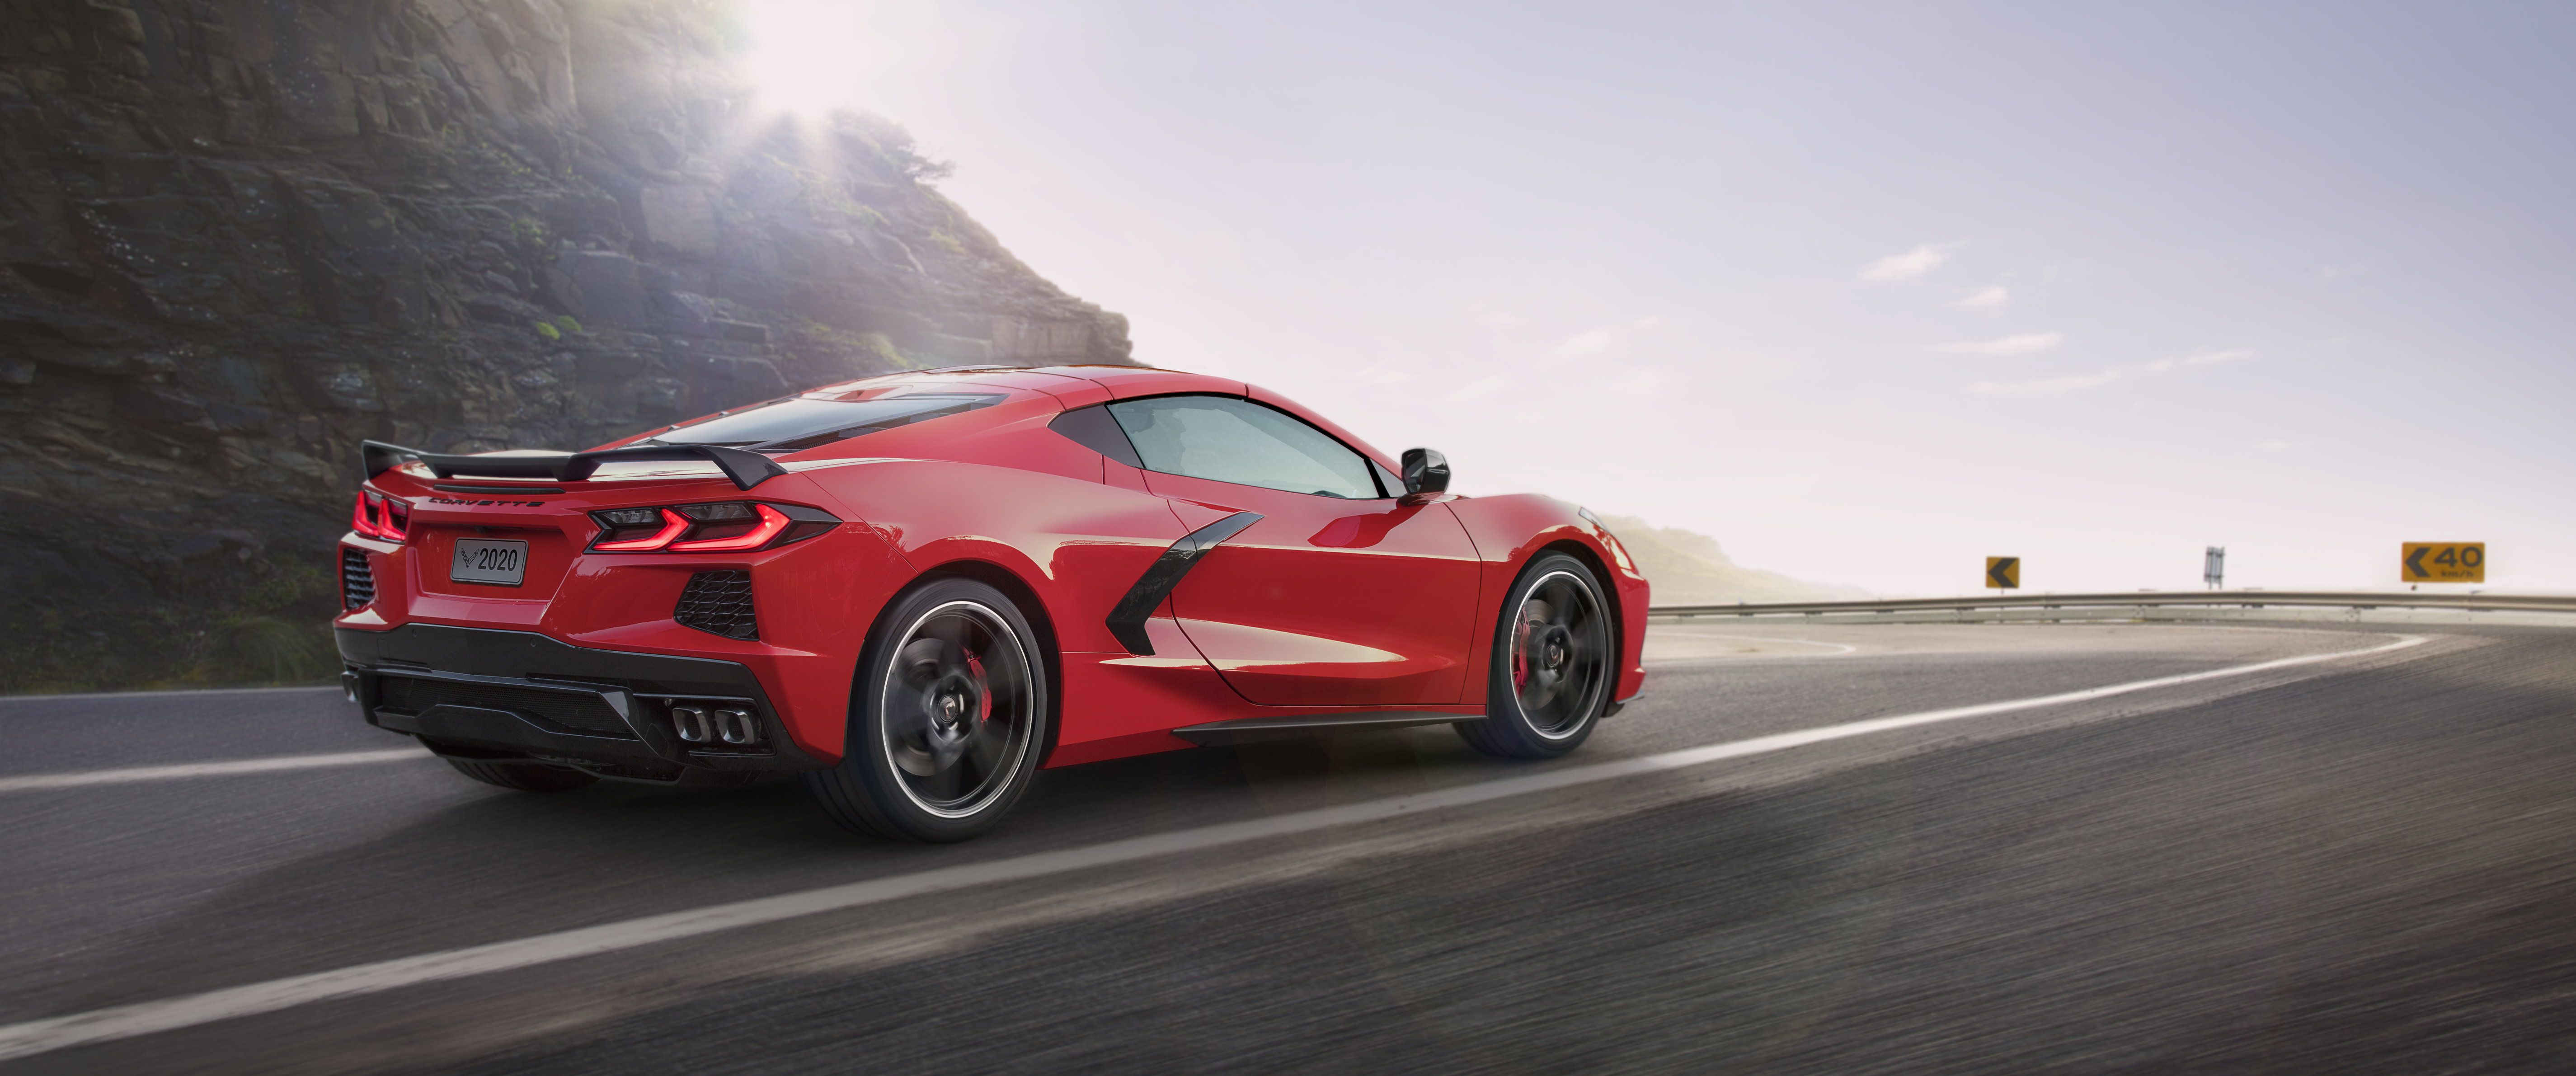 Here S What Nobody Is Telling You About The 2020 Chevy C8 Corvette Stingray Top Speed Chevrolet Corvette Chevrolet Corvette Stingray Corvette Stingray